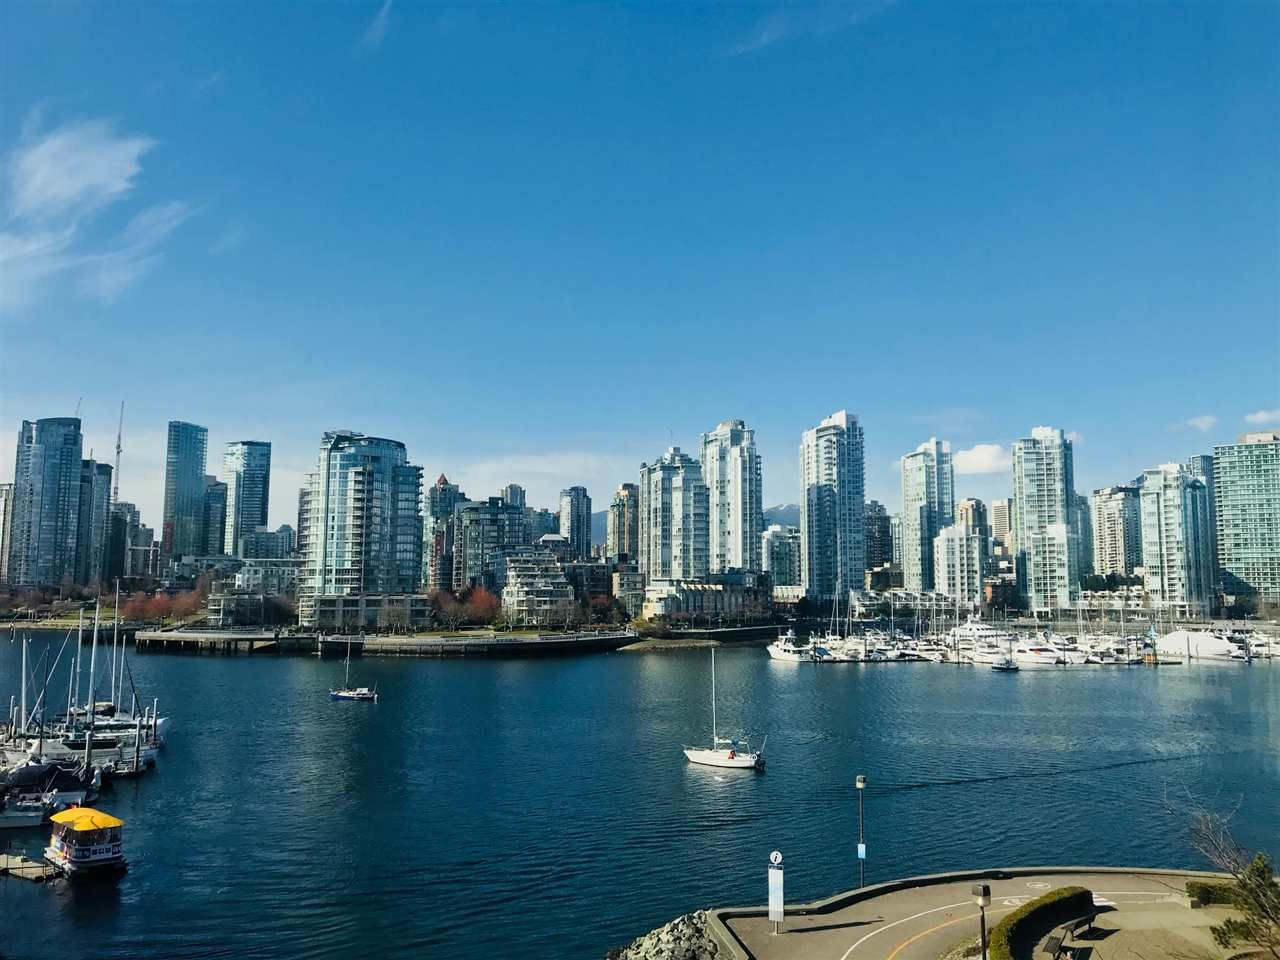 """Main Photo: 516 456 MOBERLY Road in Vancouver: False Creek Condo for sale in """"PACIFIC COVE"""" (Vancouver West)  : MLS®# R2248992"""